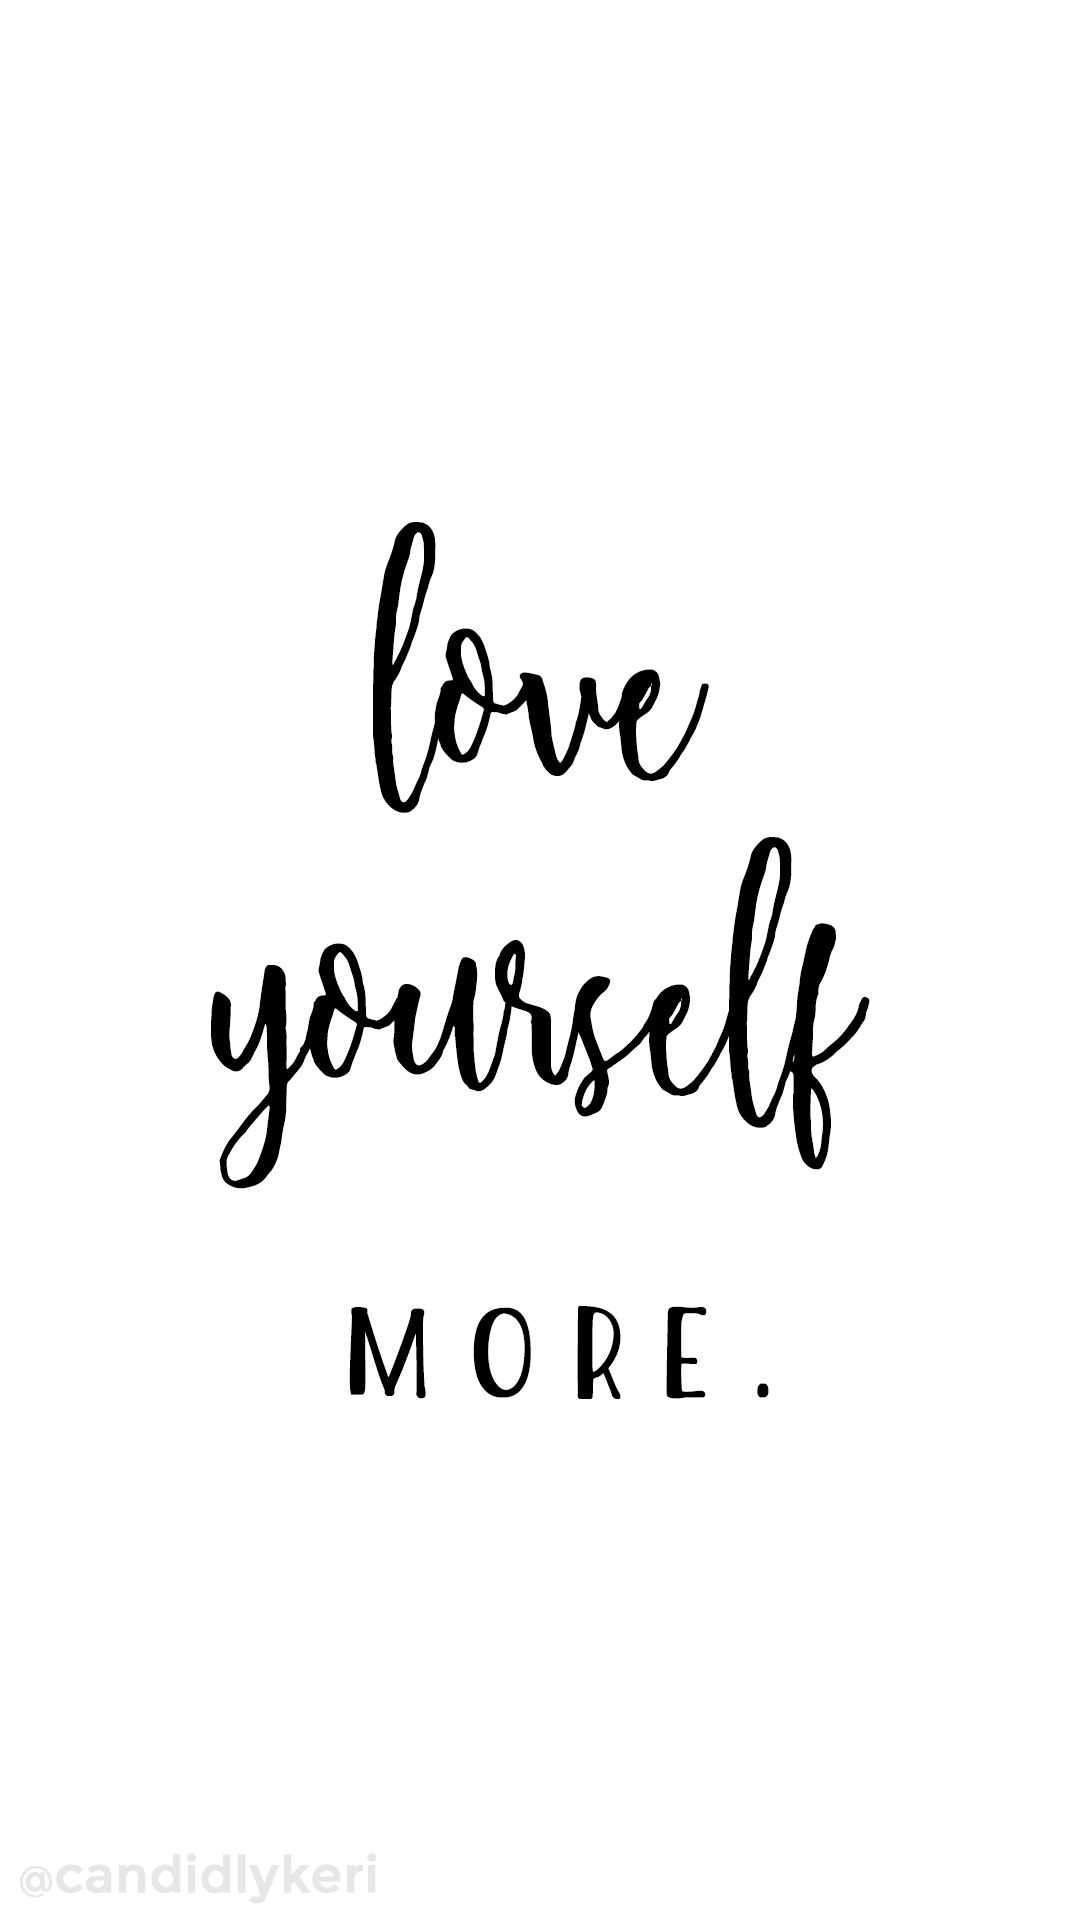 Love Yourself More Quote Inspirational Self Wallpaper You Can Download For Free On The Blog Any Device Mobile Desktop Iphone Android